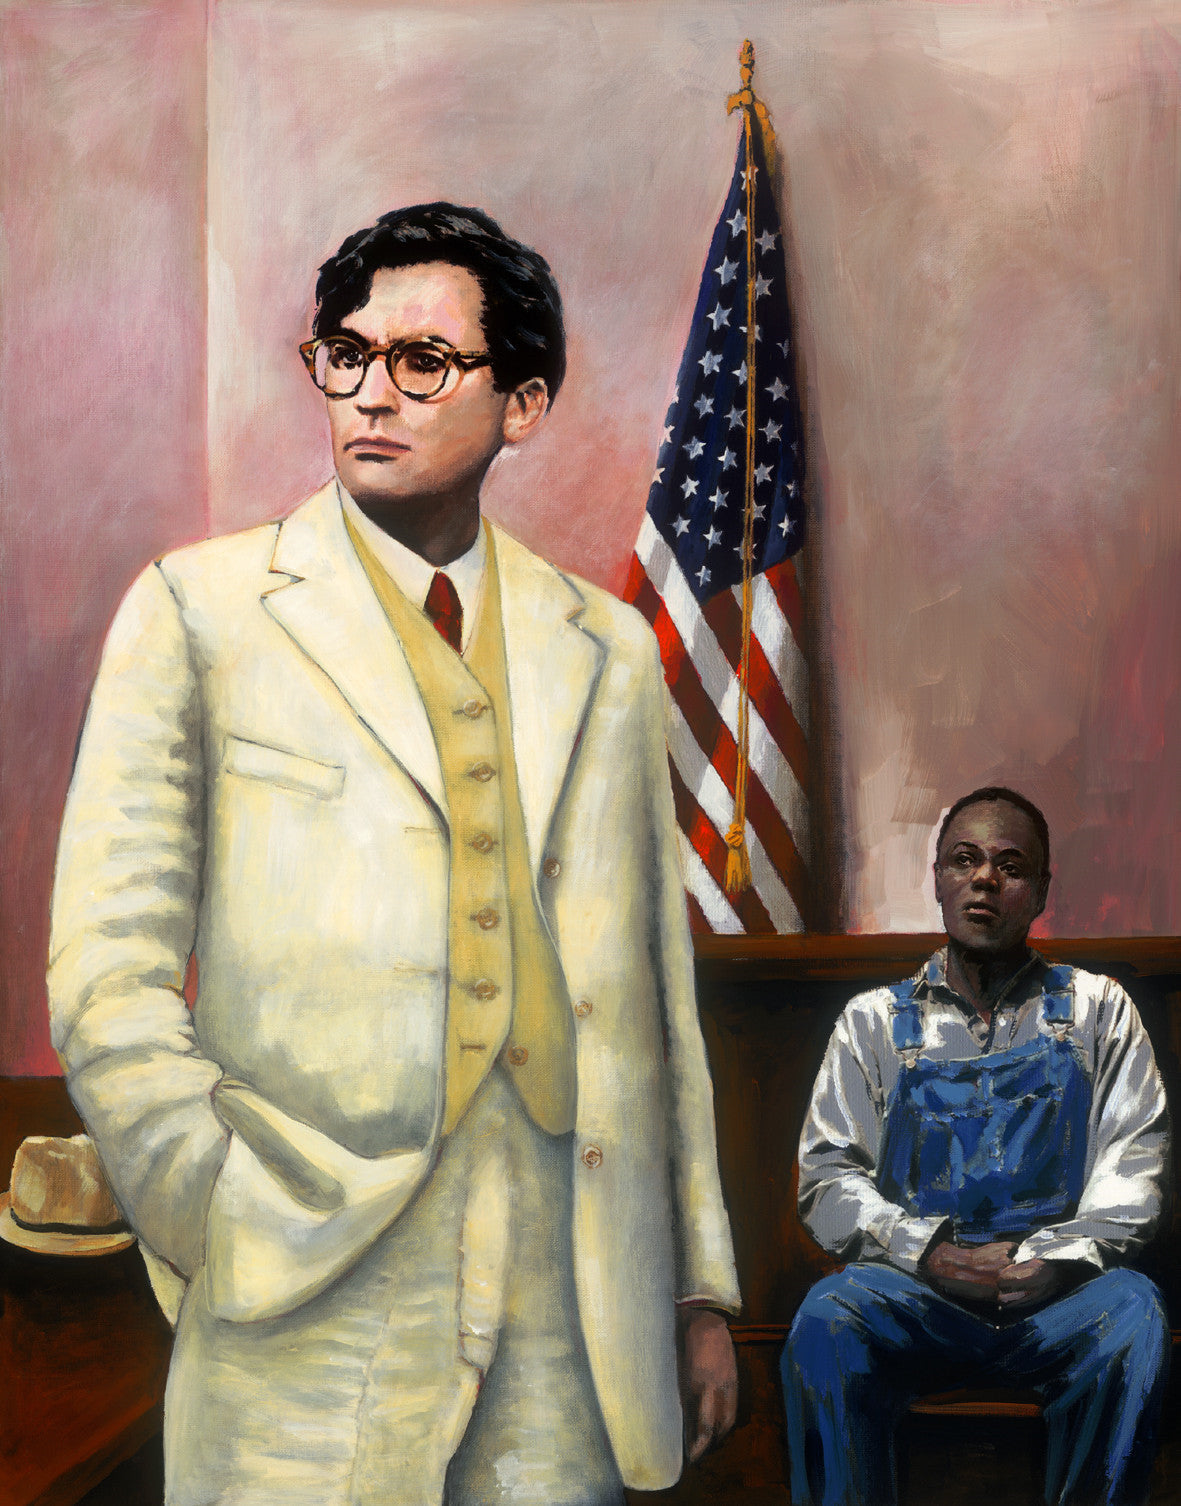 Atticus Finch defends Tom Robinson.To Kill a Mocking Bird by artist Trevor Goring